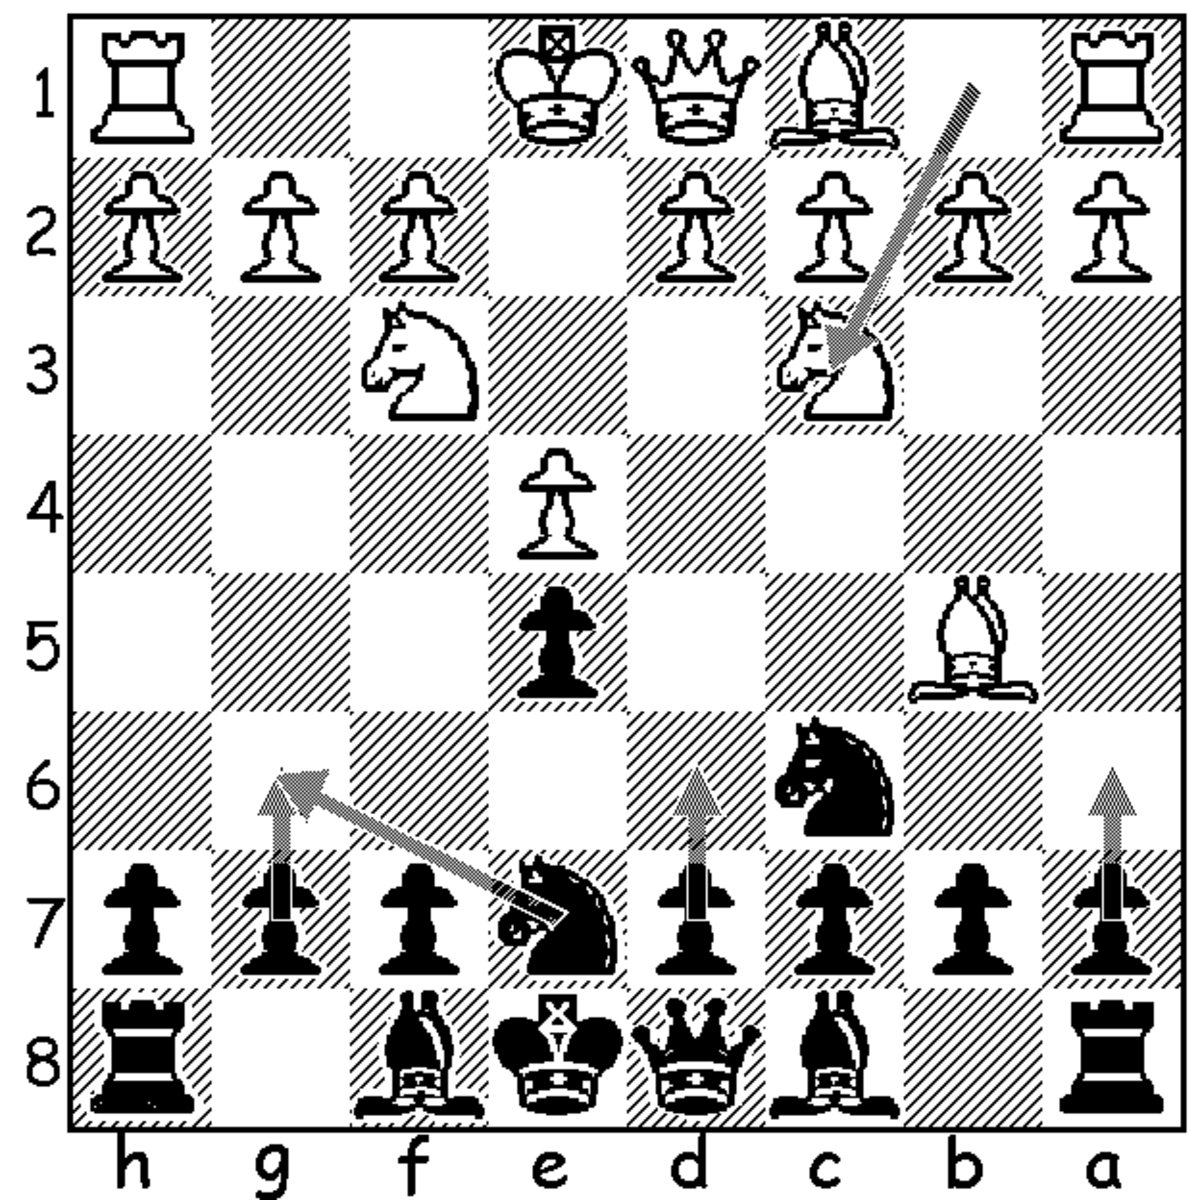 This image shows the four reasonable fourth move options for black following 4.Nc3. The only one of these that I am discussing and recommending is 4...Ng6, though they are all very playable.